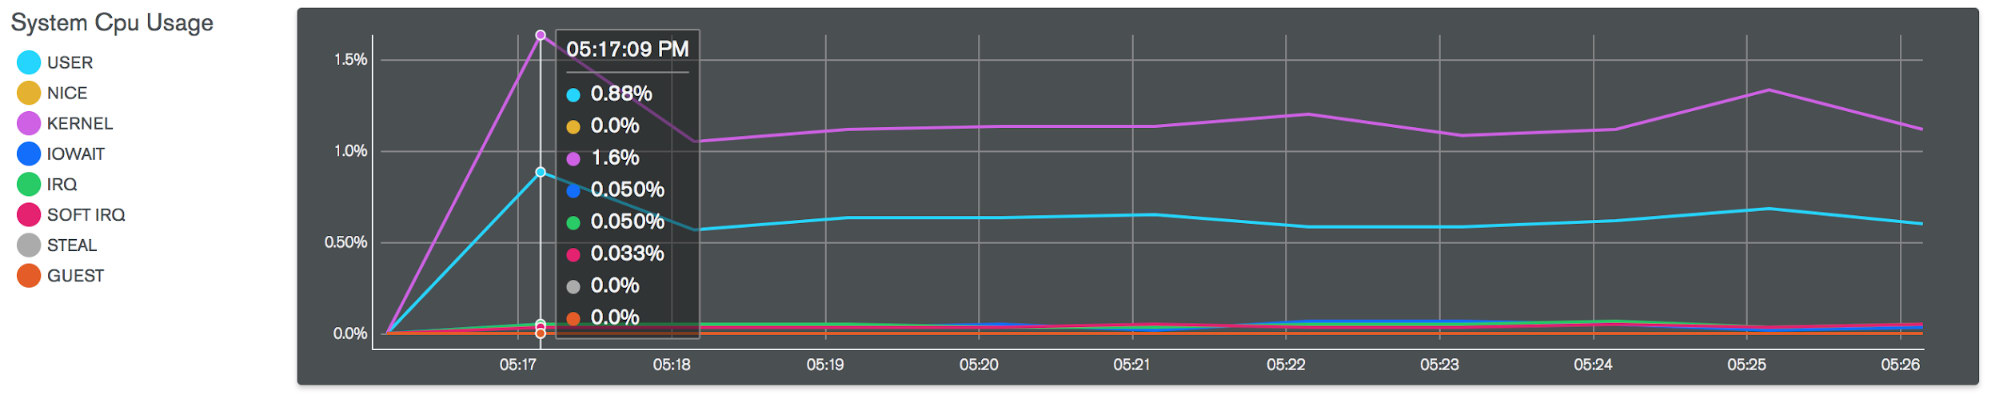 MongoDB Free Monitoring System CPU Usage